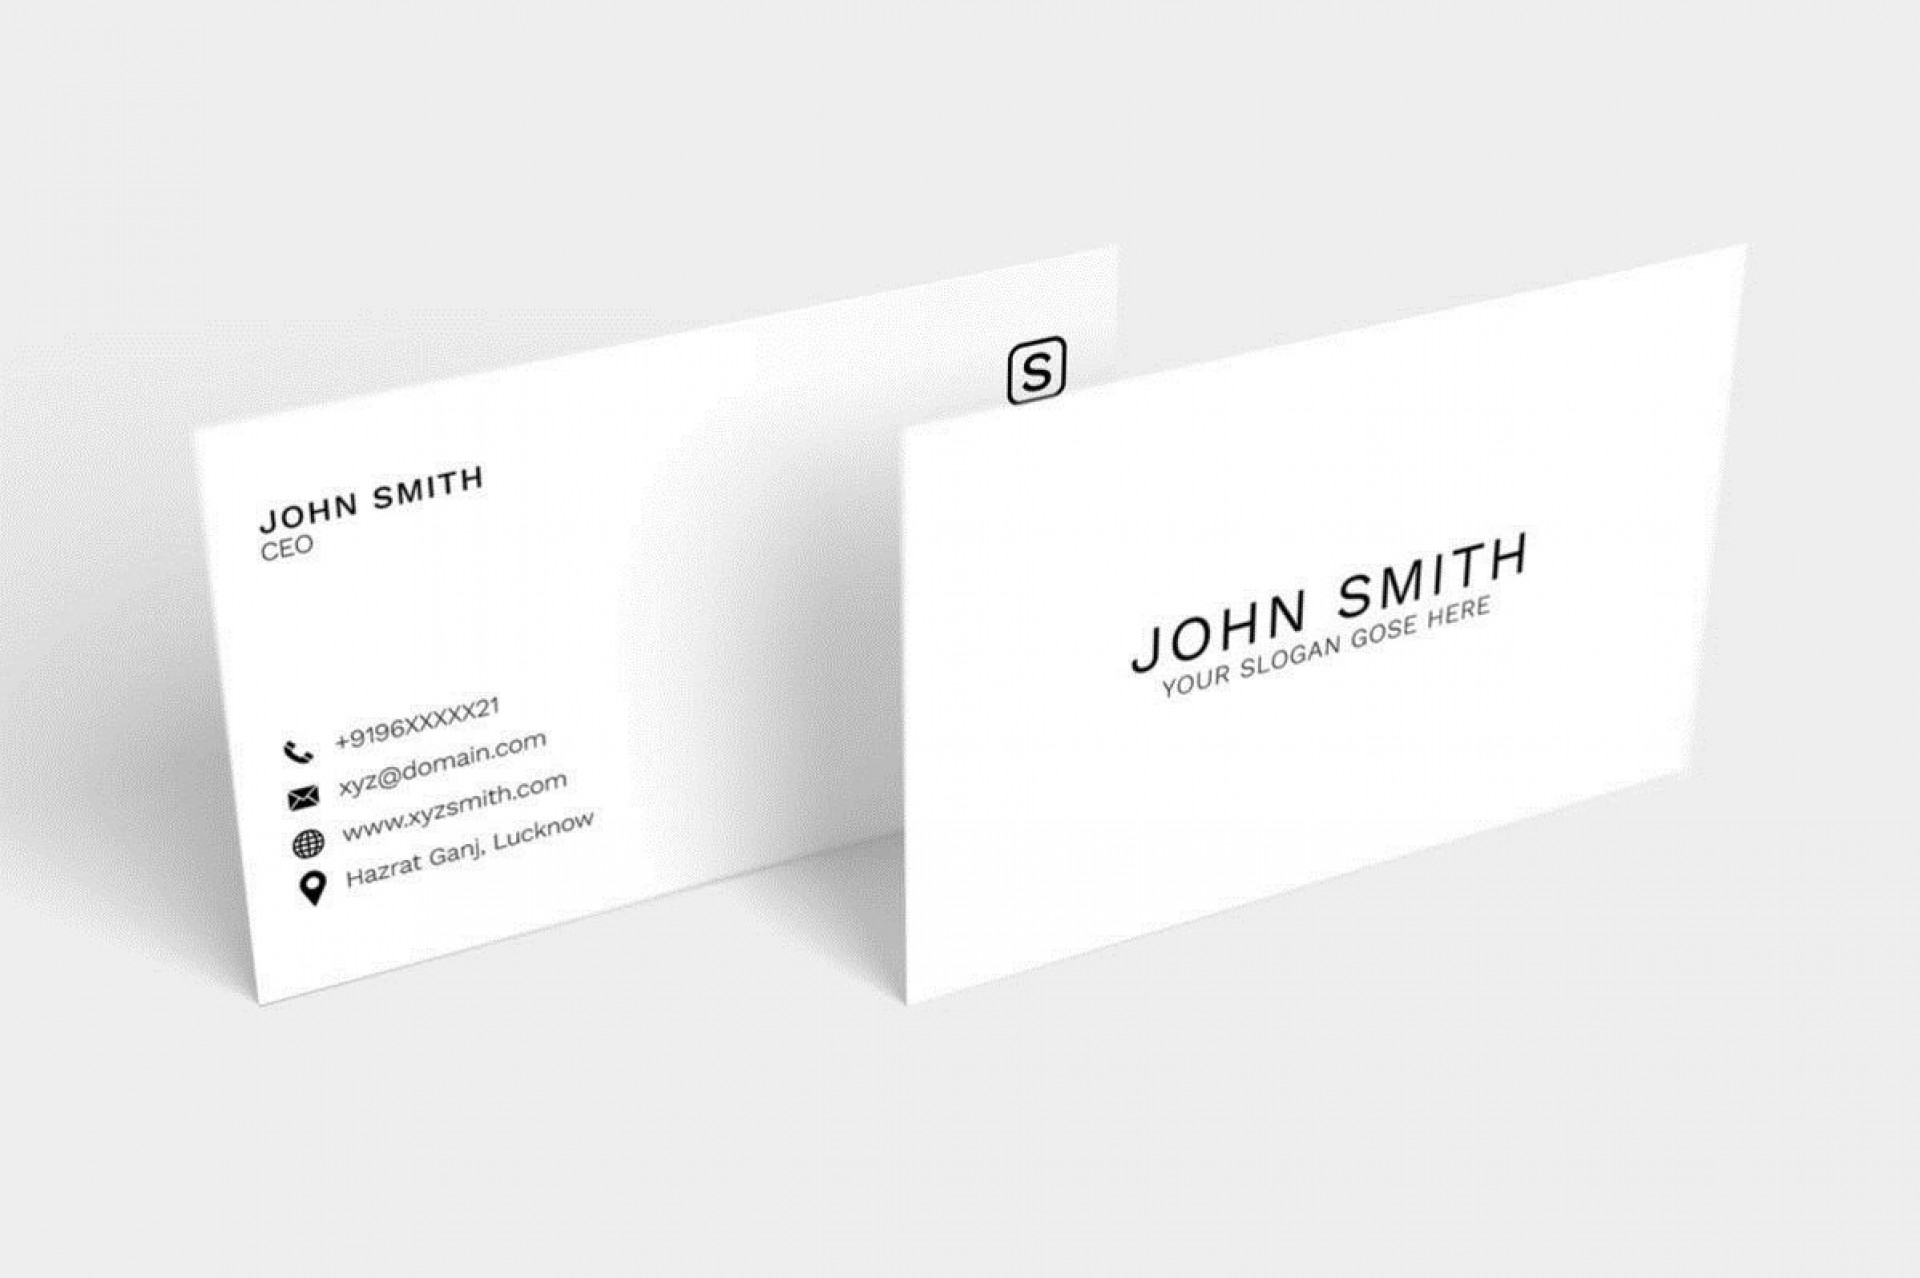 007 Staggering Minimalist Busines Card Template Psd Free High Definition 1920